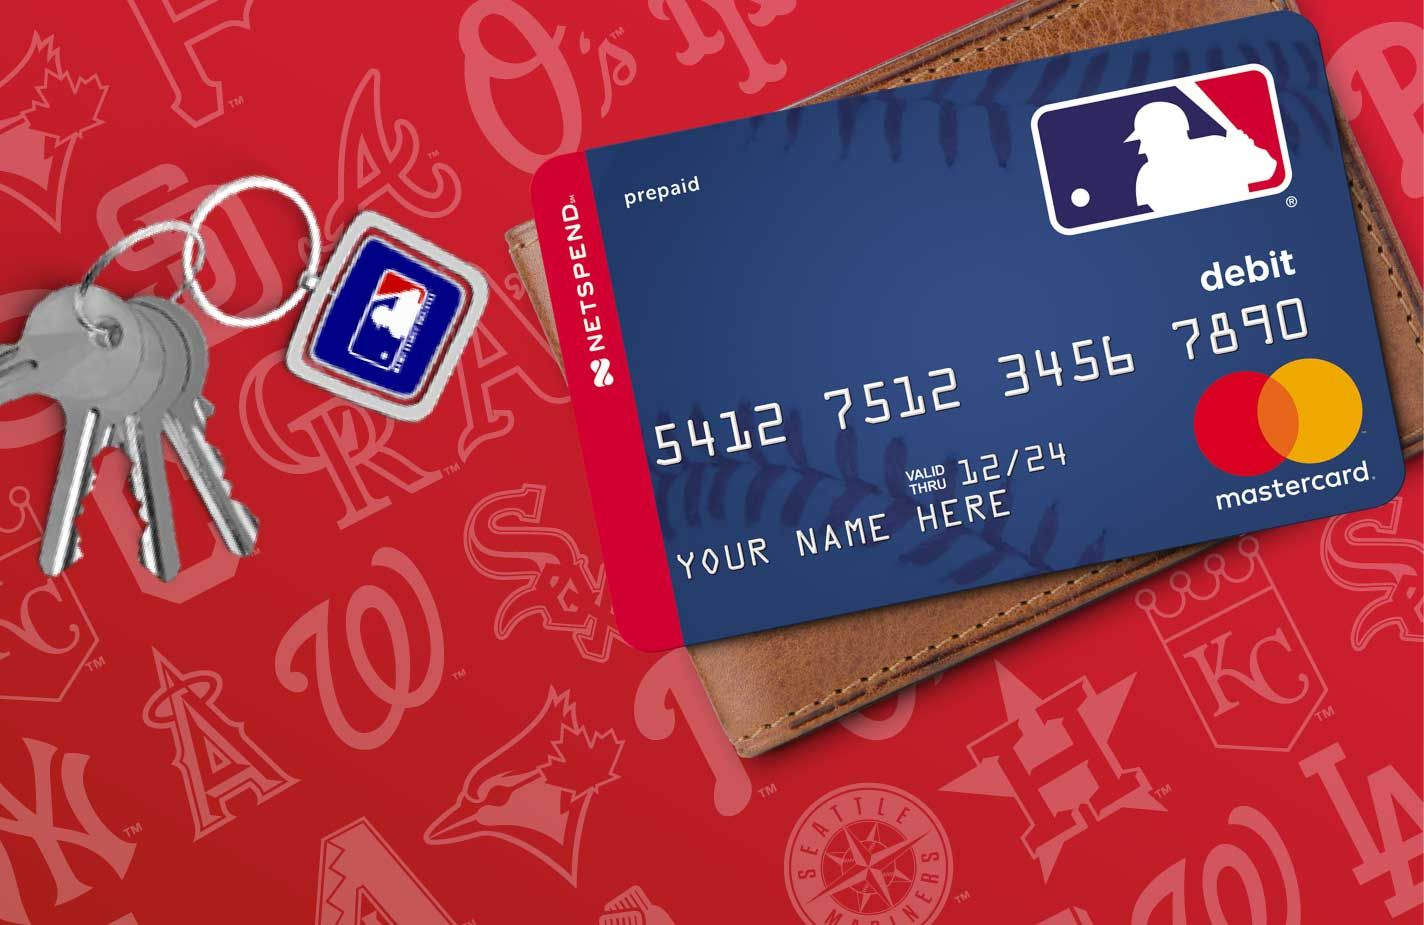 Netspend Is A Leading Provider Of Prepaid Debit Cards For Personal Commercial Use Order Your Own Prepaid Card To Prepaid Debit Cards Prepaid Card Debit Card